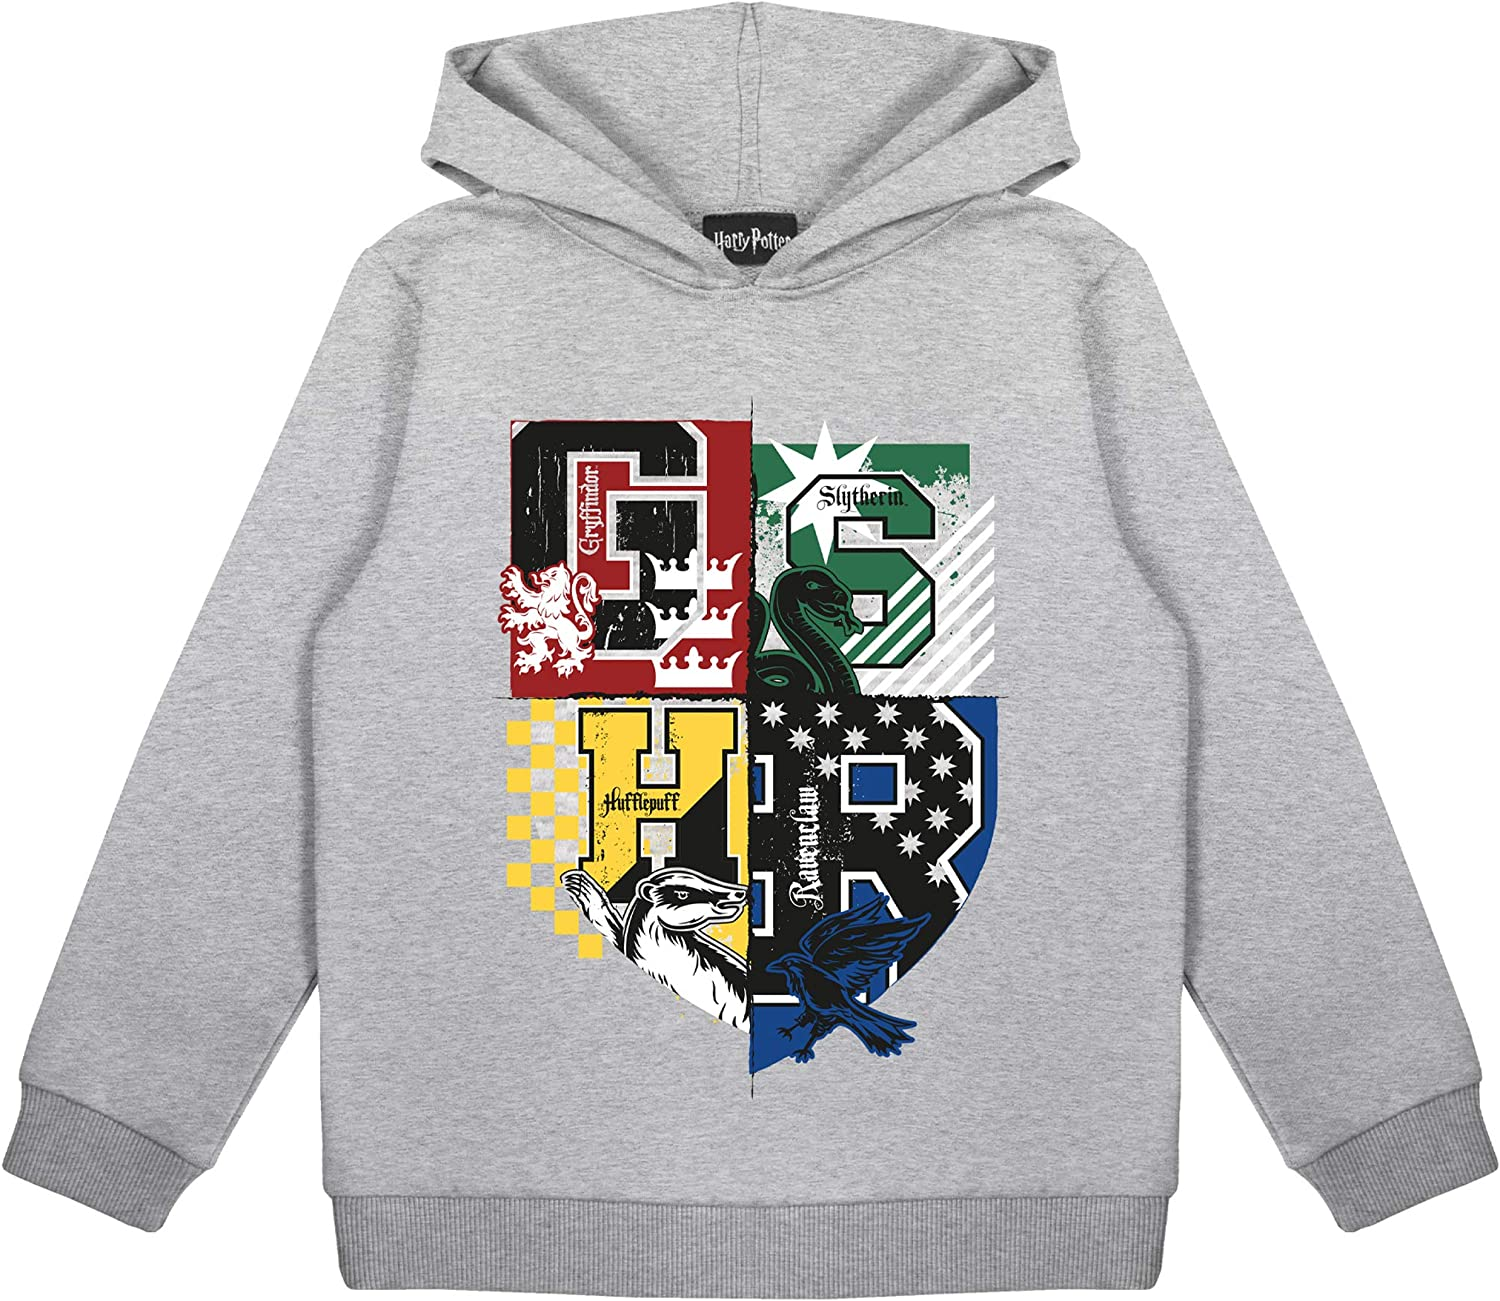 Harry Potter Gifts Kids Birthday Gift Idea Childrens Clothes Harry Potter Hogwarts House Crests Girls Pullover Hoodie Ages 3 13 Official Merchandise Girls Hooded Sweatshirt Clothing Girls Clothing